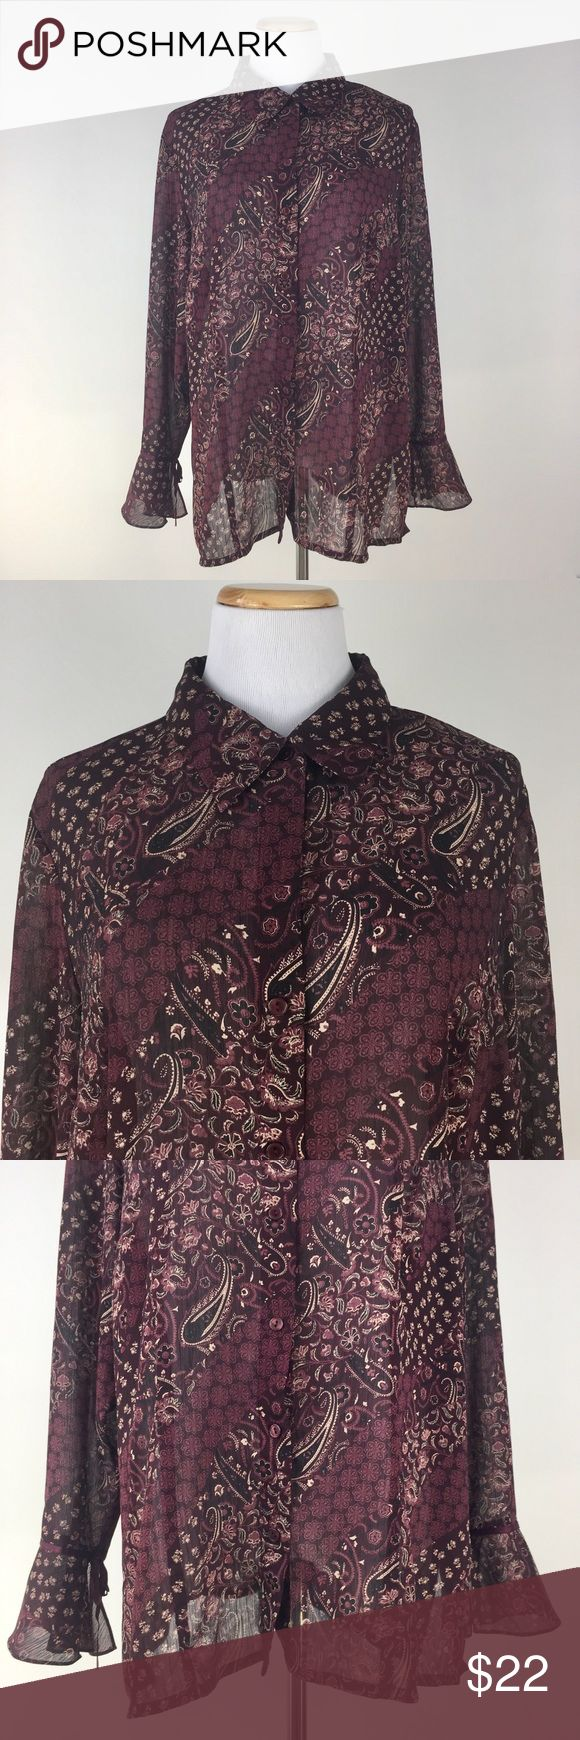 "Floral & Paisley Bell Sleeves Sheer Shirt XXL/1X This is a size XXL/1X long bell sleeves floral & paisley pattern front button down shirt. Sheer. Merlot (Brownish purple red) color. Loose Fit. Pre-owned. Great shape and in excellent condition. Gently used. Clothing brand/size/material labels are all cut off. Please check measurements to ensure a good fit. Material: Label is missing Shoulder to Shoulder: 17"" Bust (Pit to Pit): 24.5"" Sleeve Length: 25"" Garment Length: 29.5"" No  Tops Button…"